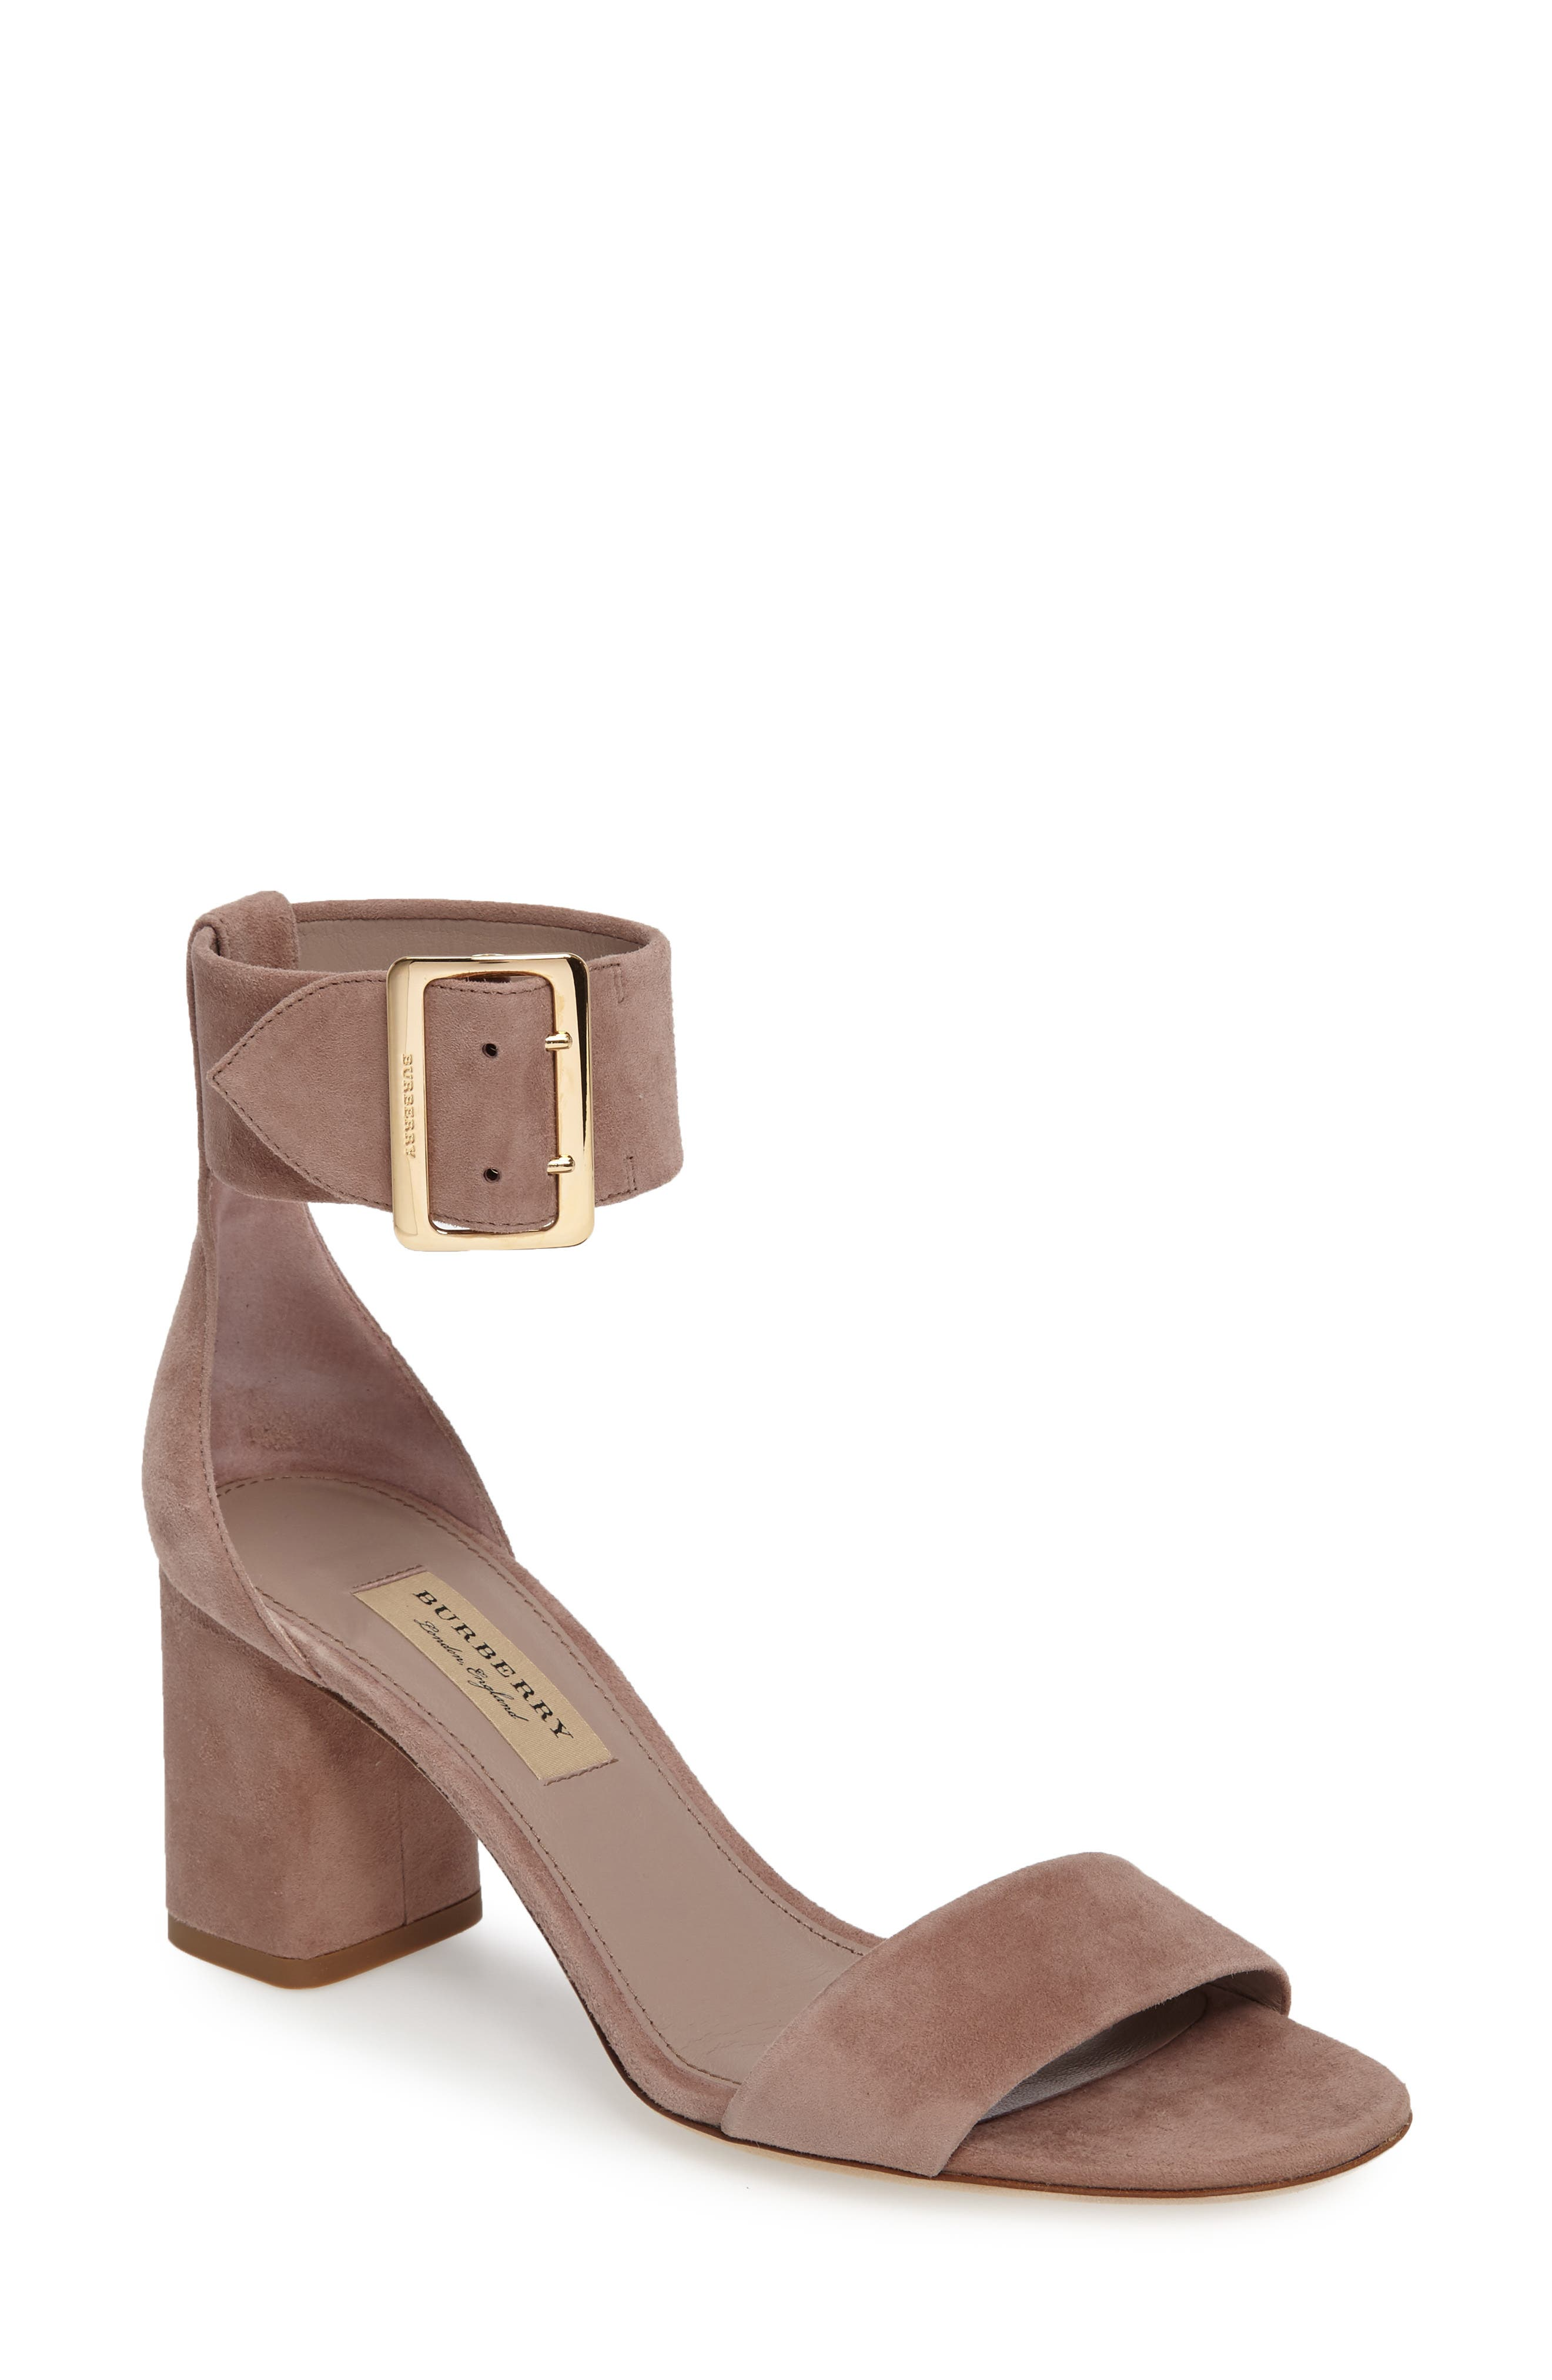 Burberry Trench Buckle Sandal (Women)